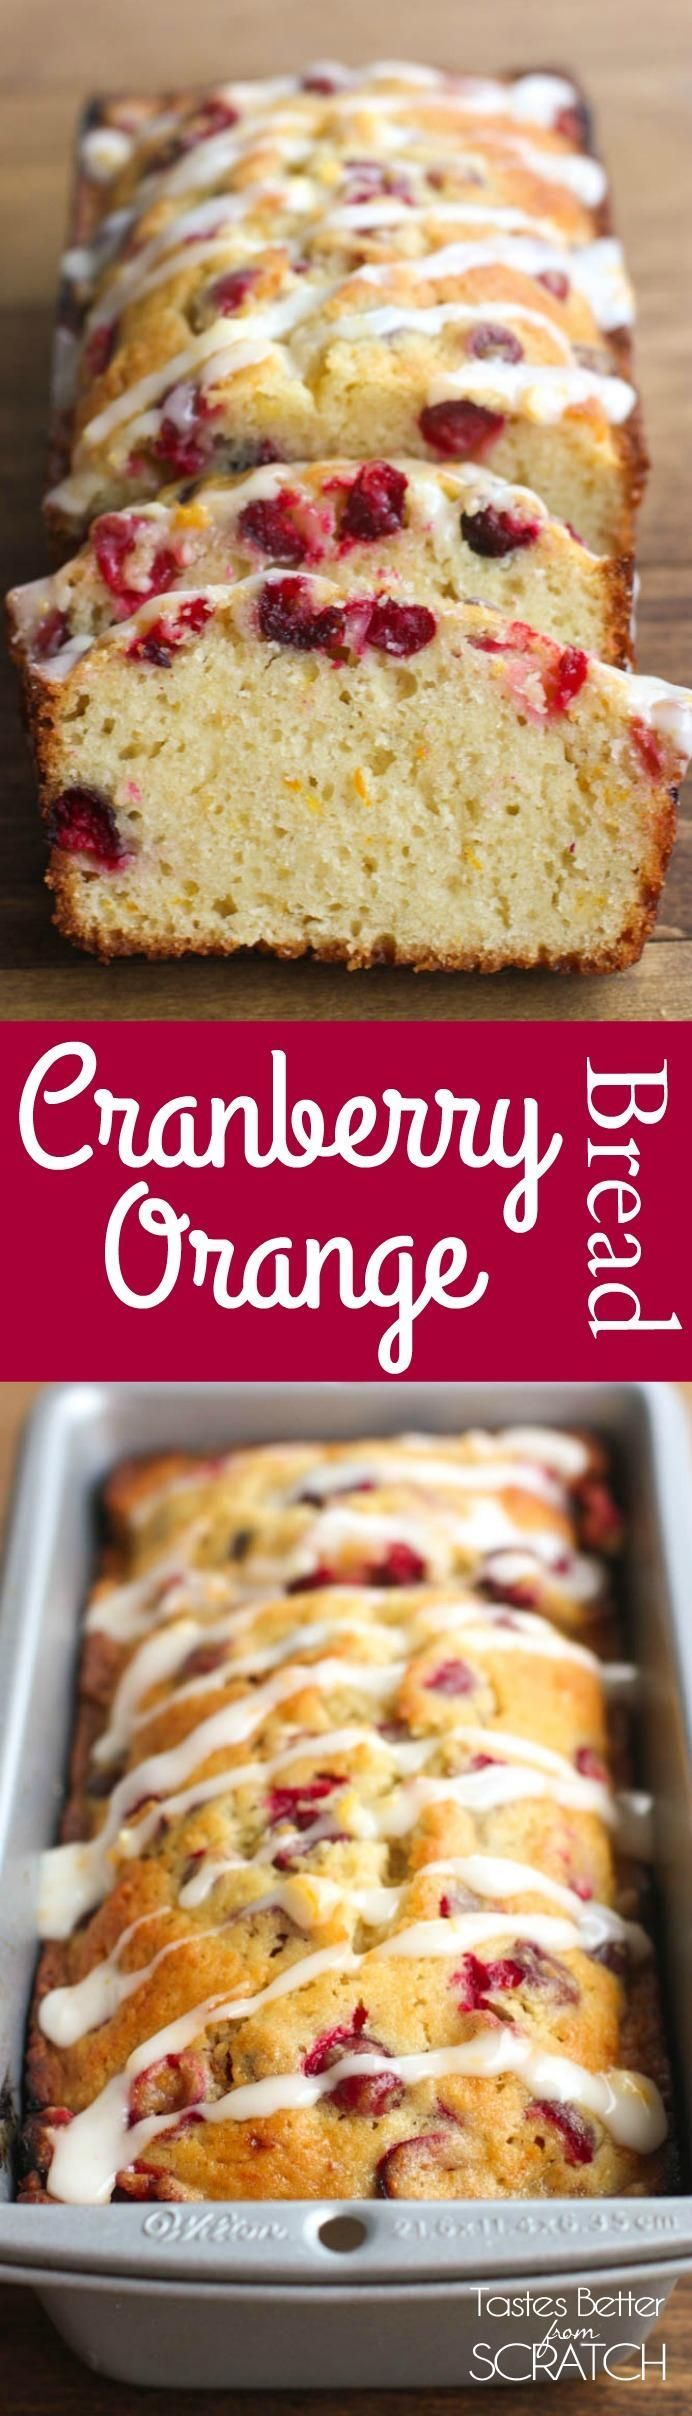 Cranberry Orange Bread with a sweet orange glaze | Tastes Better From Scratch